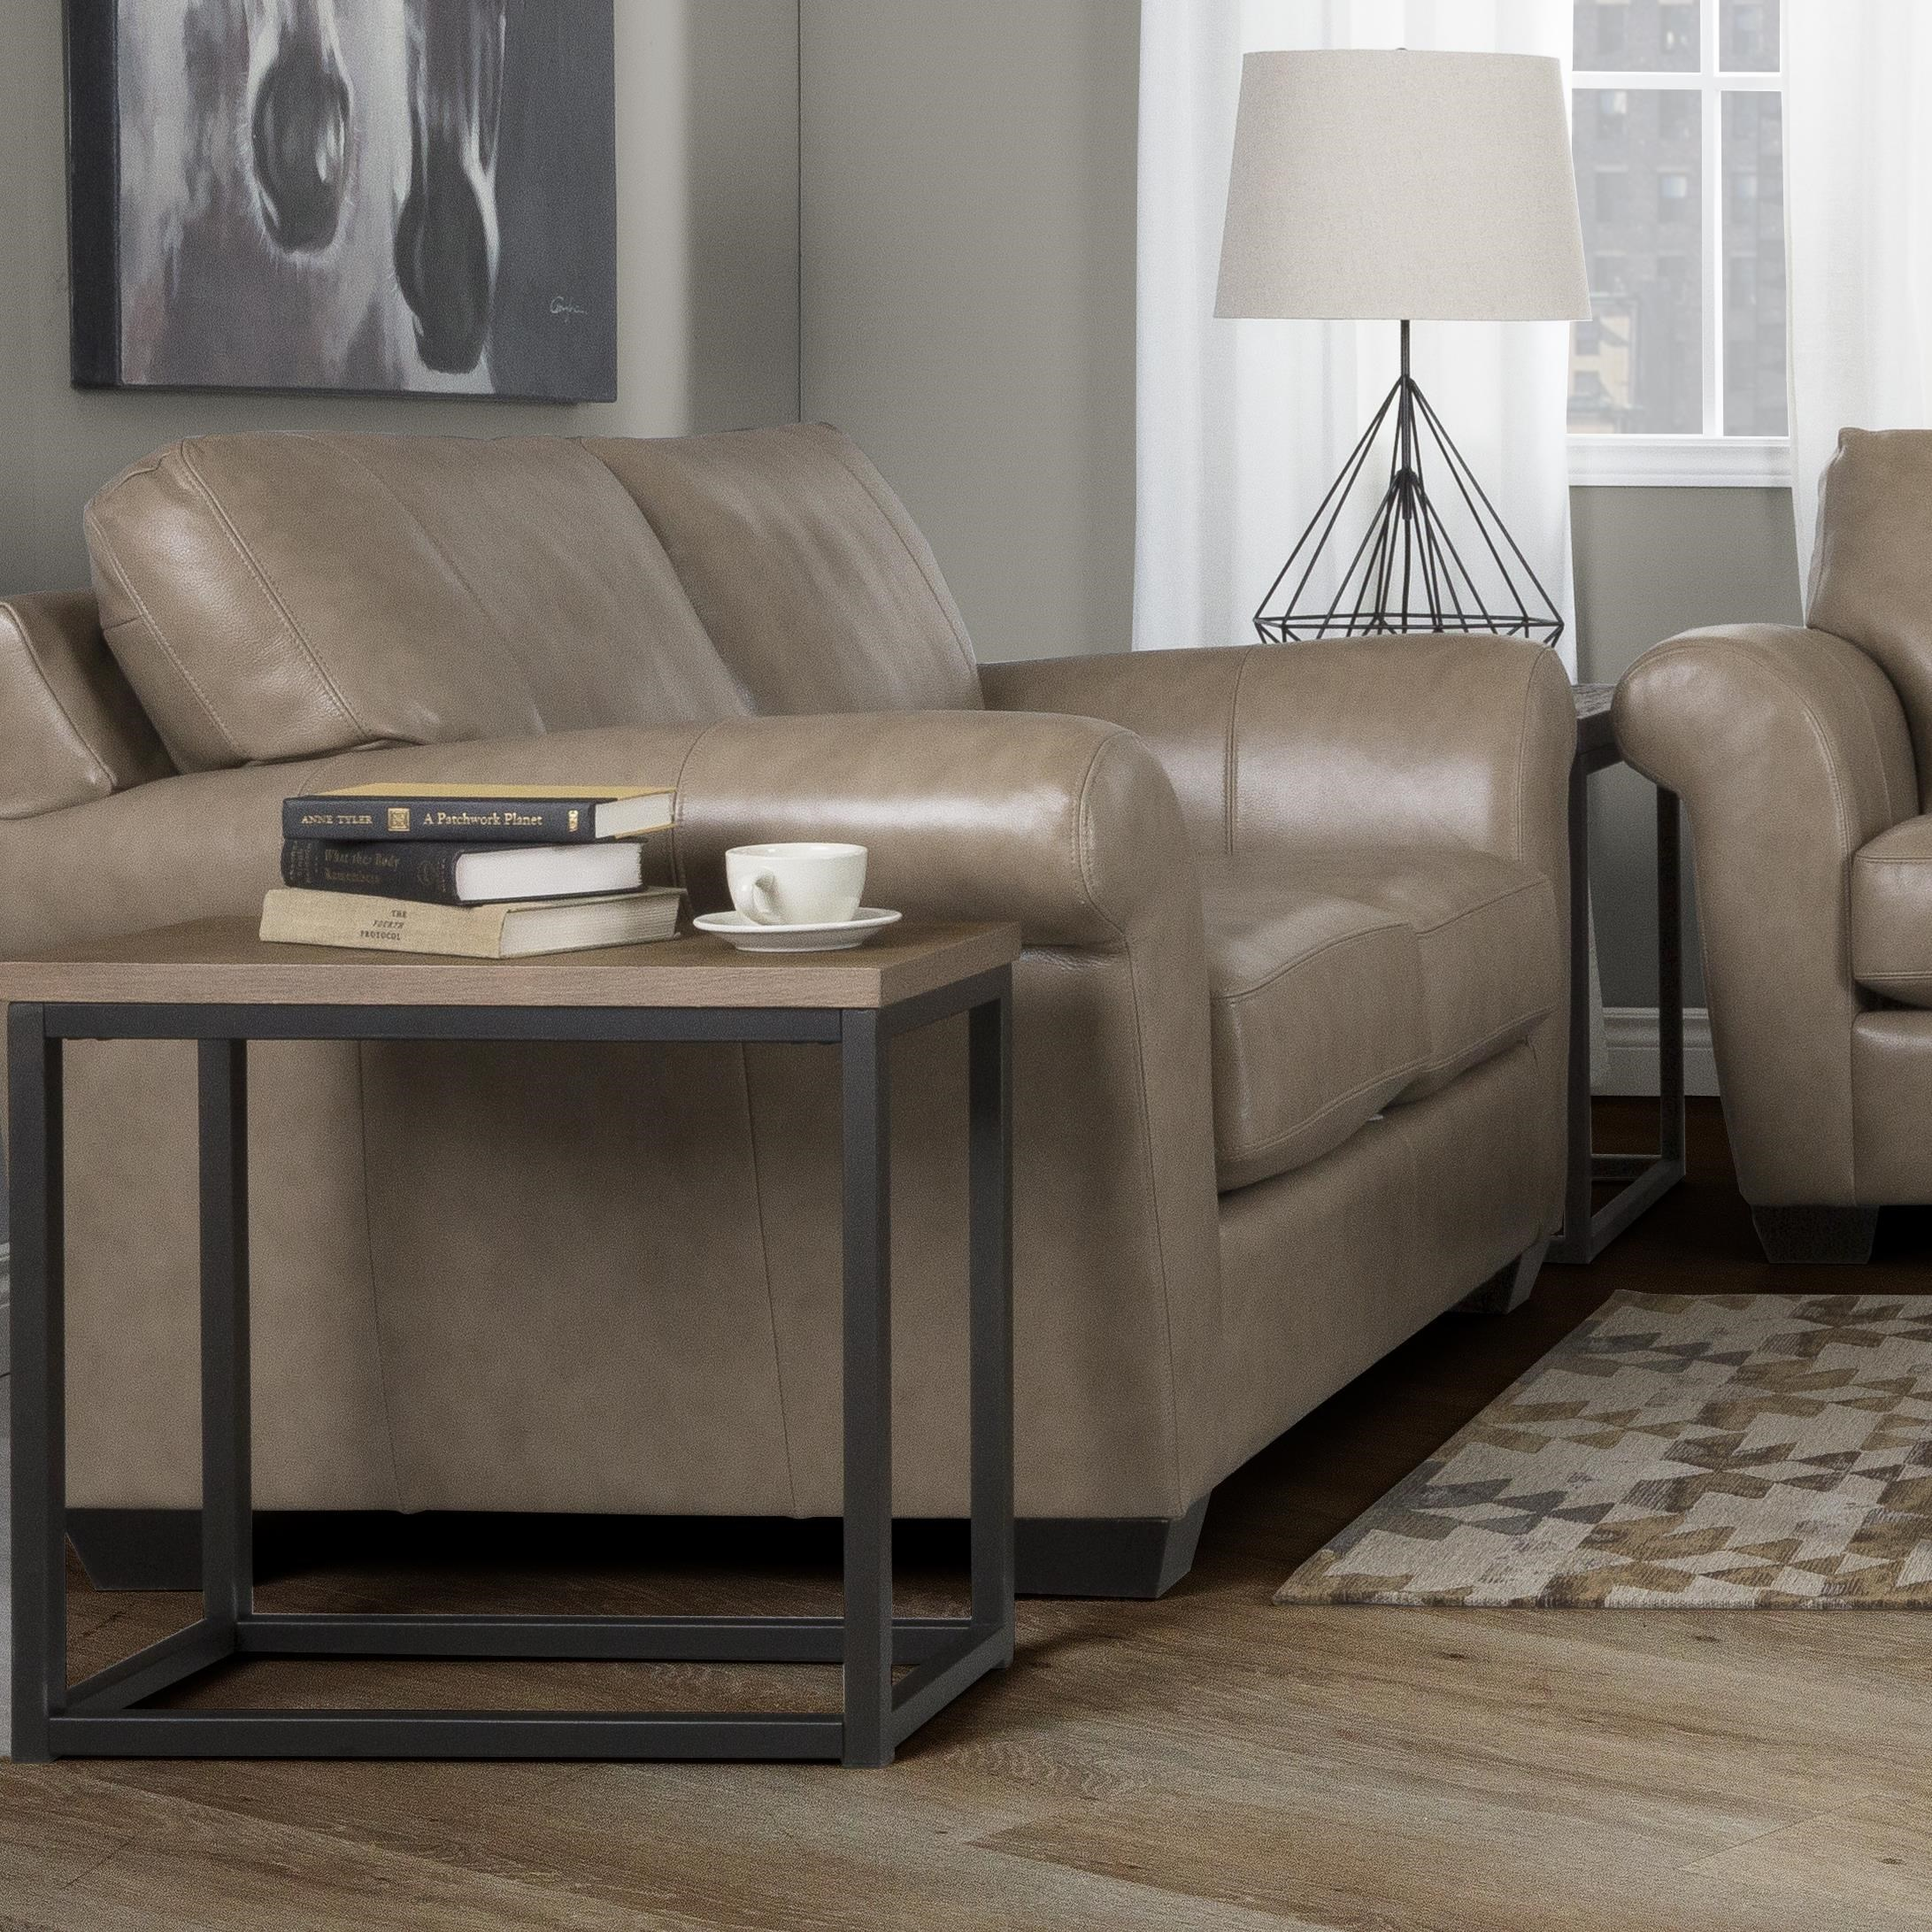 Decor-Rest 3553 Casual Loveseat - Godby Home Furnishings